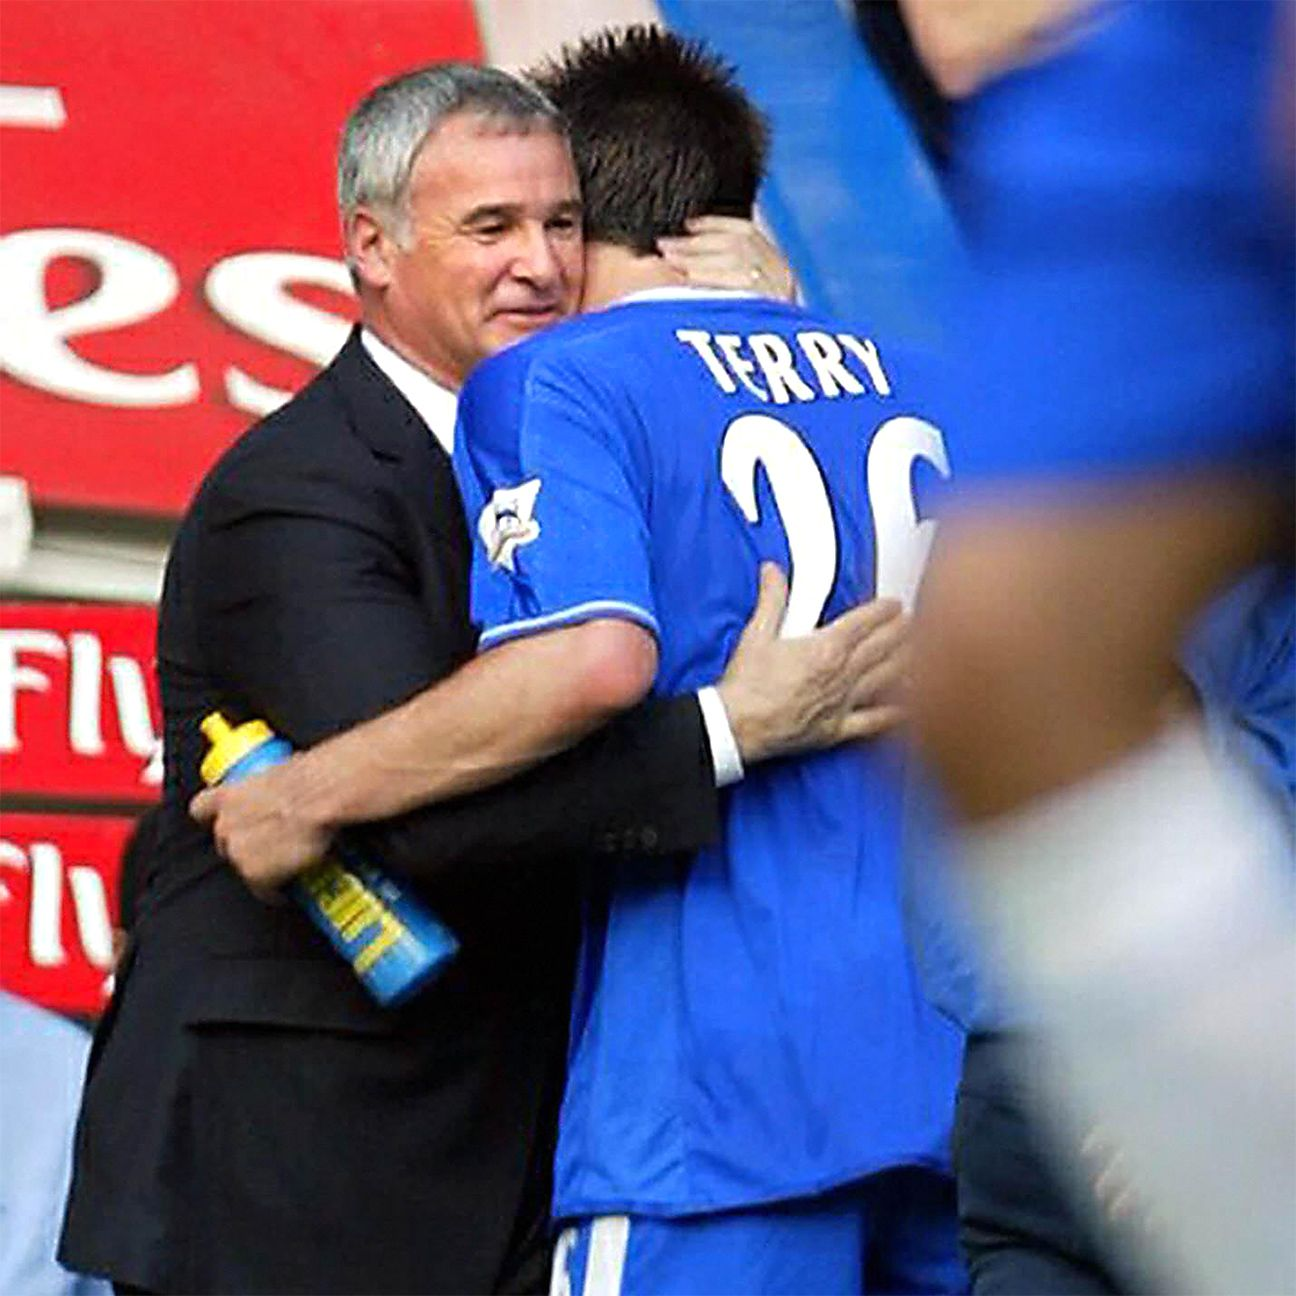 Prior to Jose Mourinho's arrival to Stamford Bridge in the summer of 2004, Claudio Ranieri guided the Blues to a second place finish.